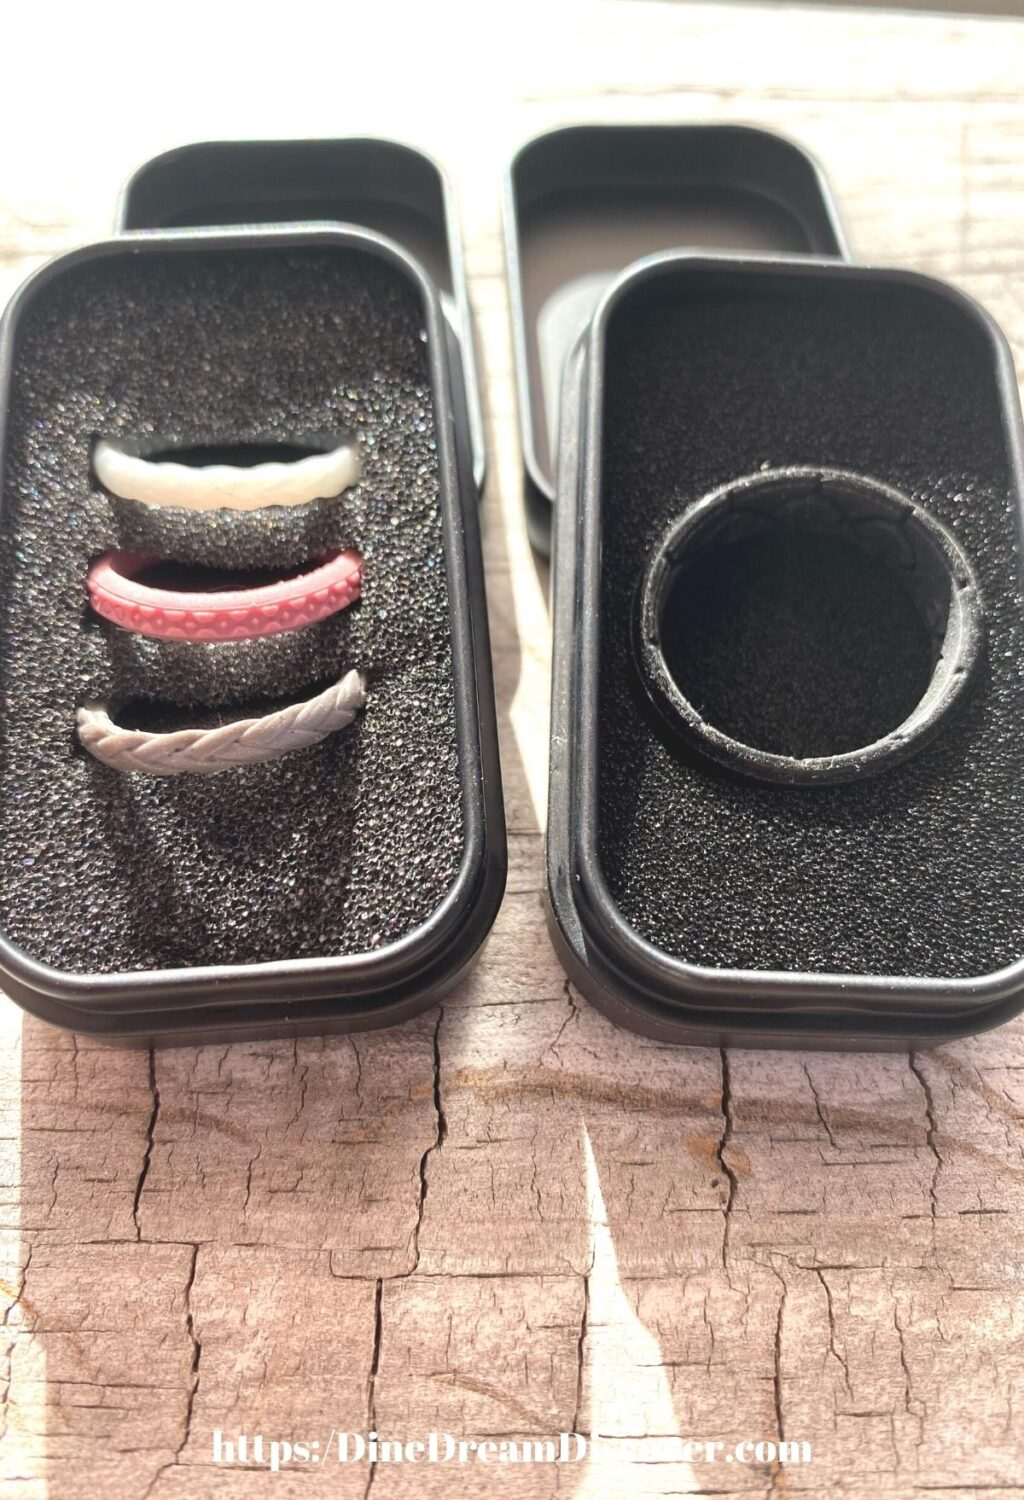 men's and women's silicone bands